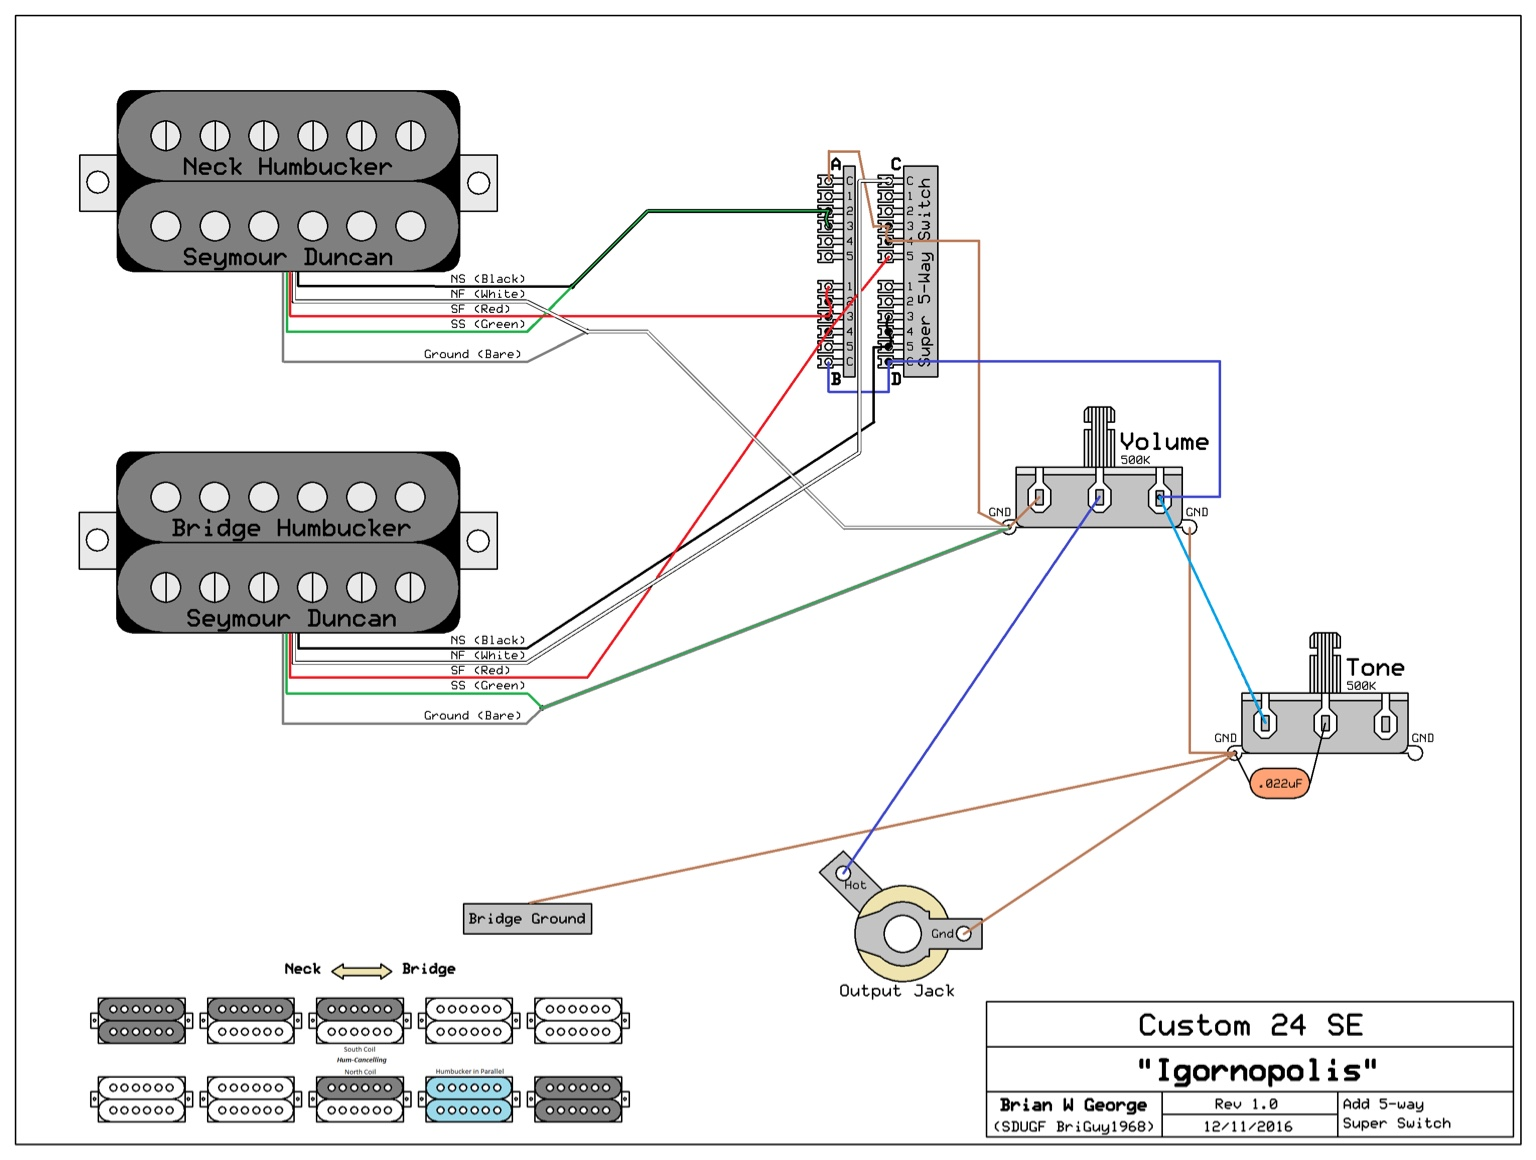 5 way super switch wiring help rh seymourduncan com fender 5 way super switch wiring diagram Fender HSS Wiring-Diagram